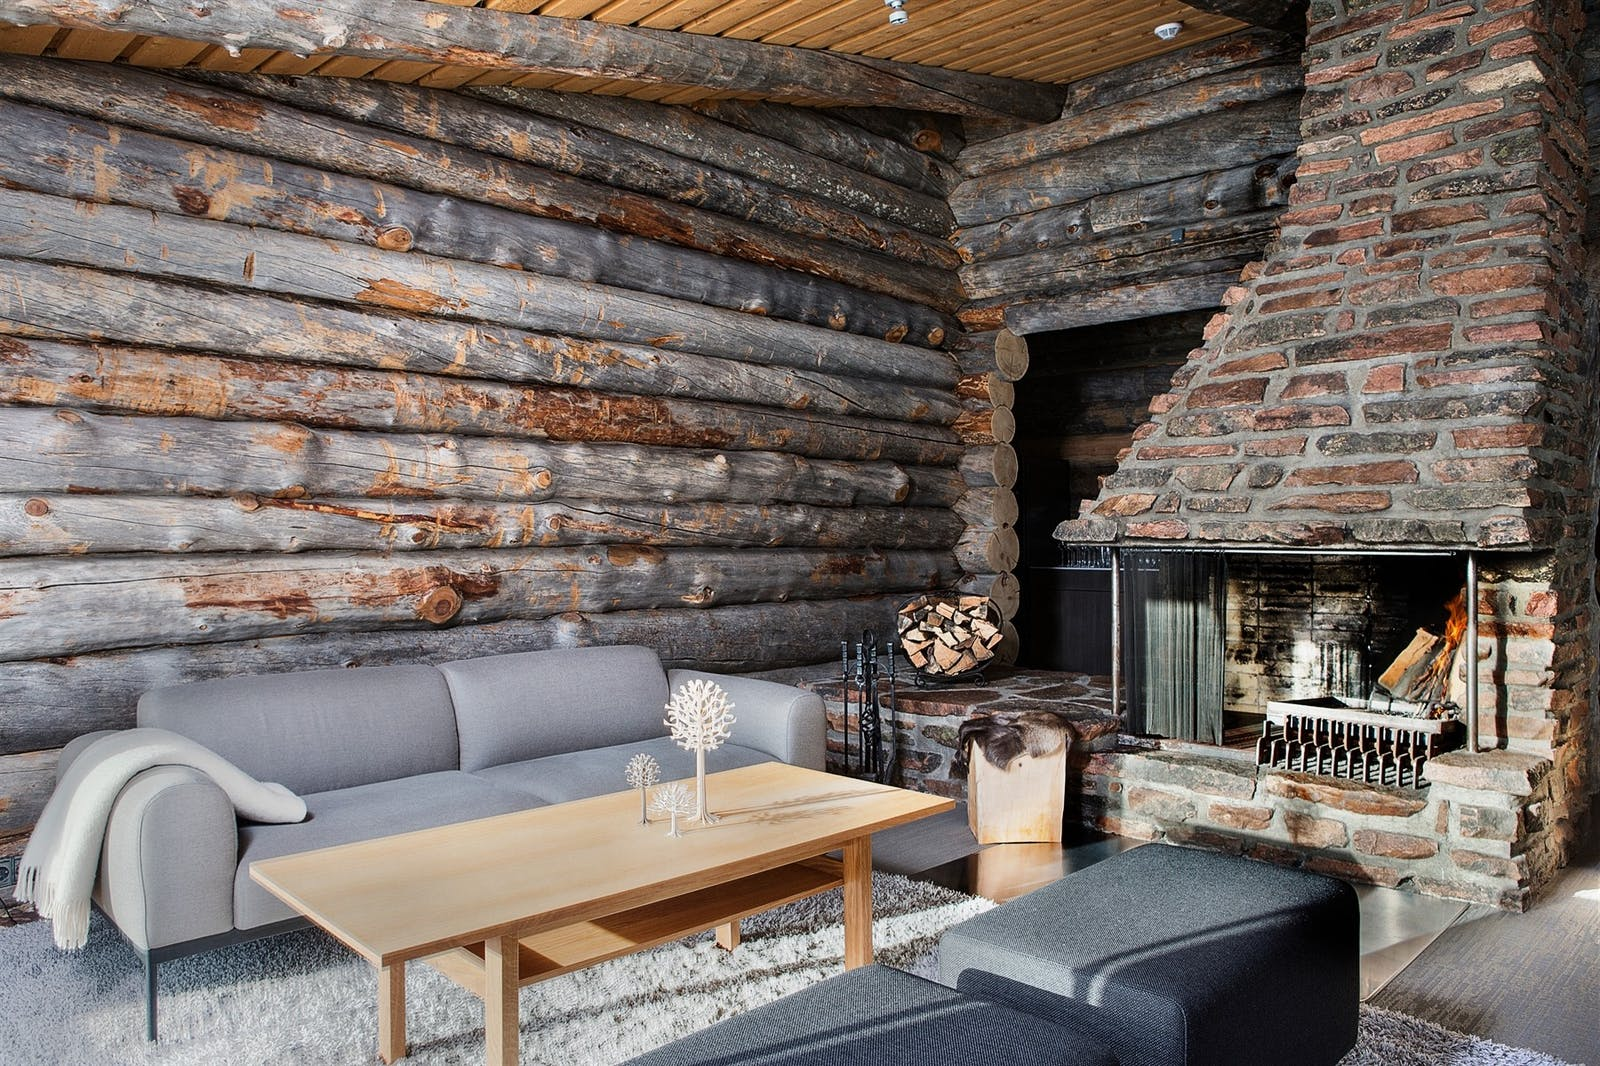 Lounge with log fire, Javri Lodge, Finland